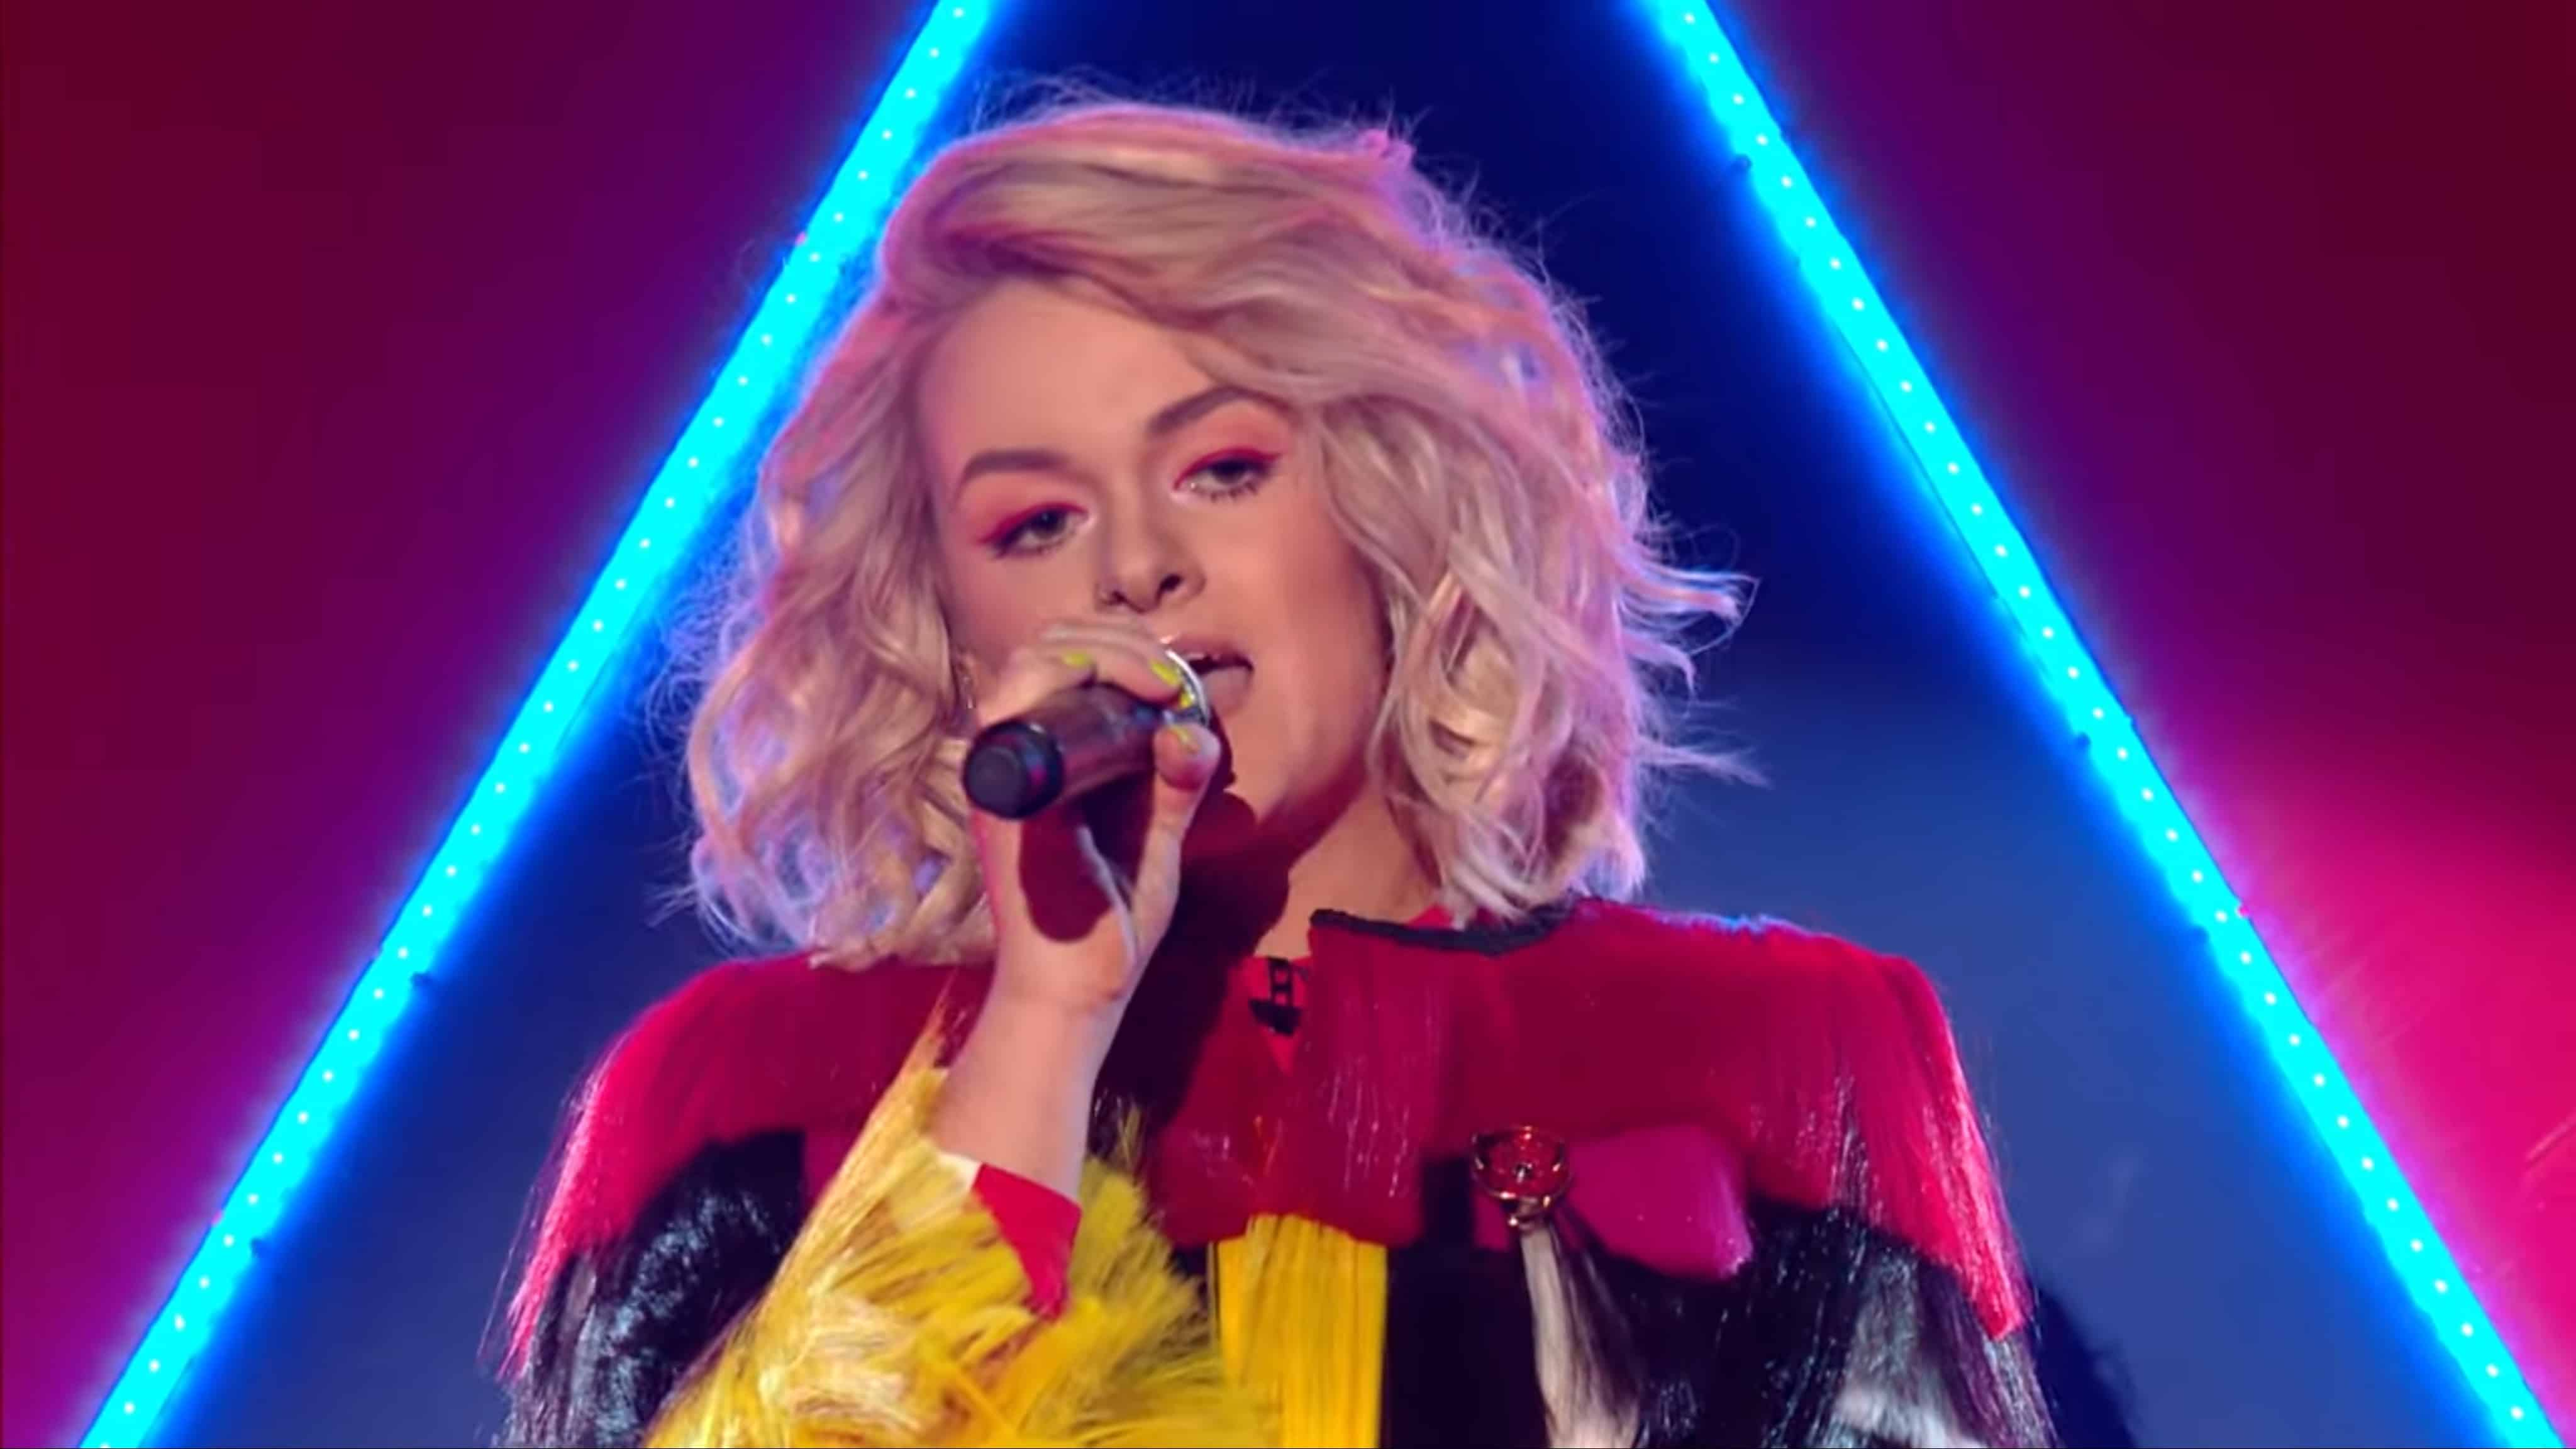 X Factor 2017: Grace Davies SECOND contestant to 'break rule' this